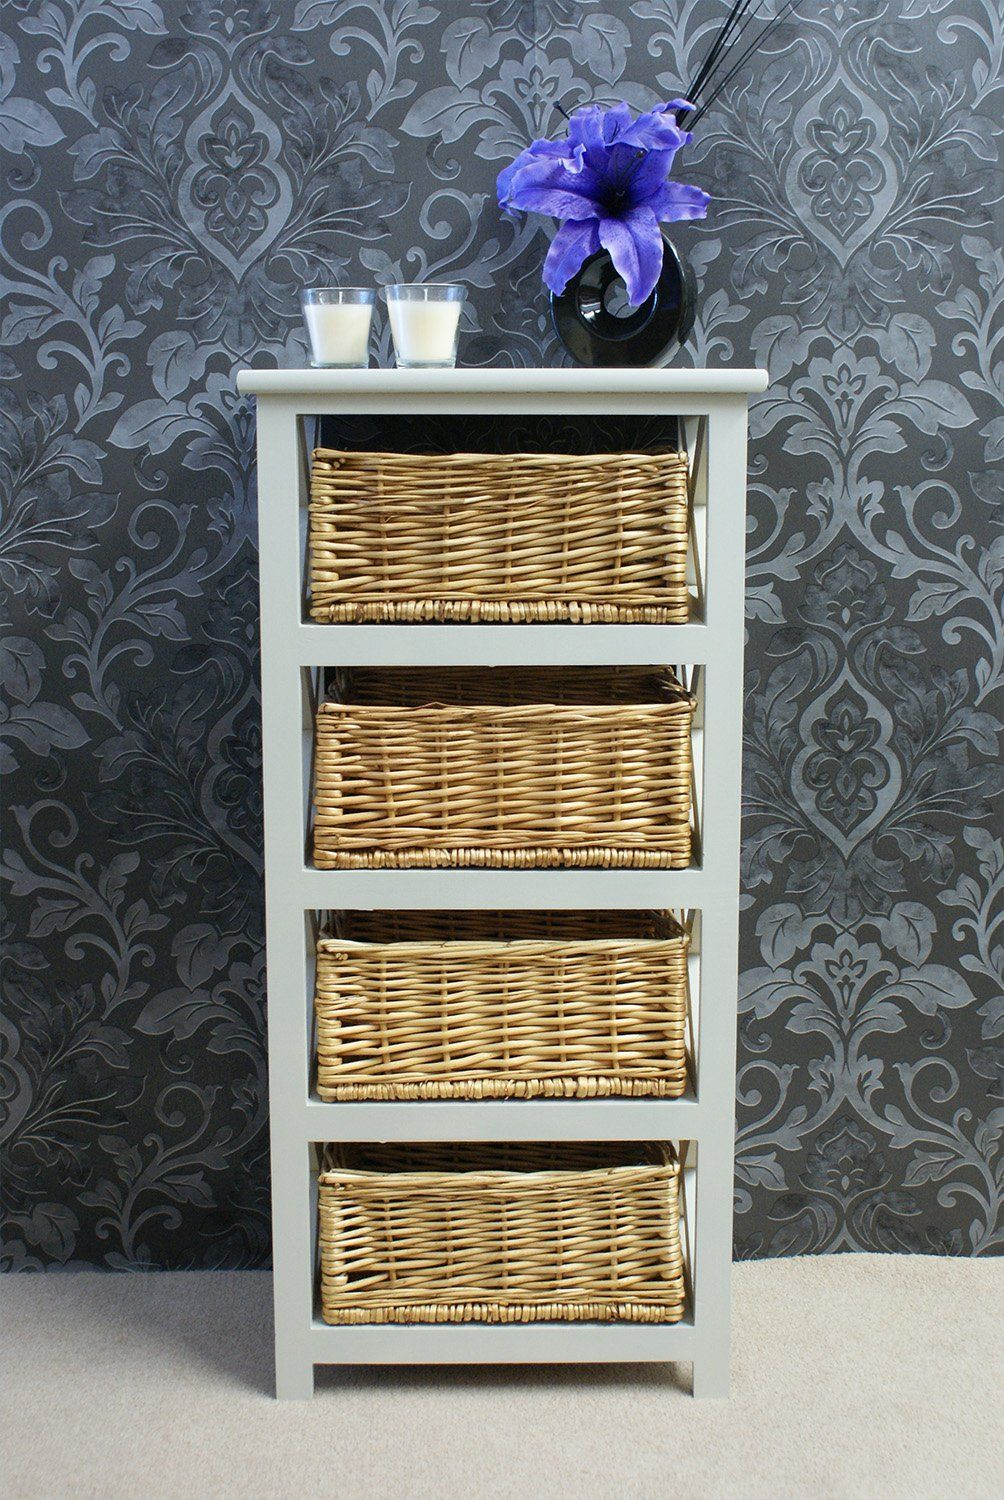 Gloucester Petite 4 Rattan Basket Drawer Storage Unit Tallboy Chest In  White Stone Painted Finish: